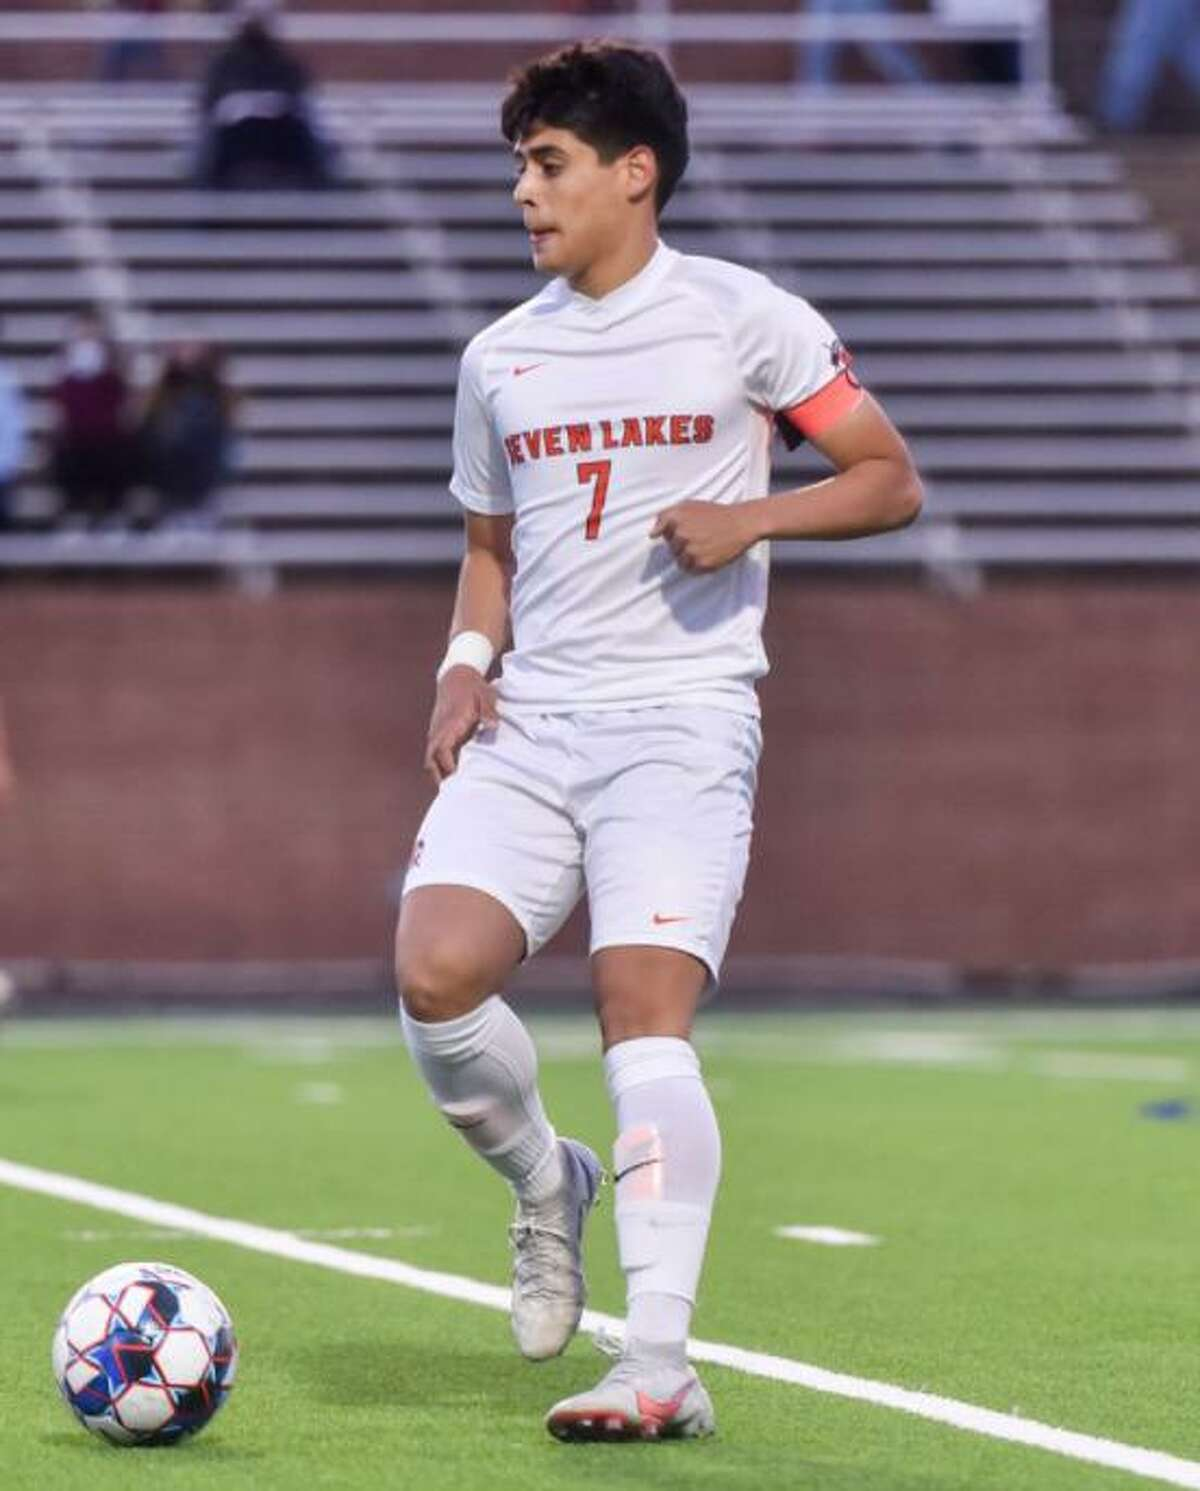 Seven Lakes senior Diego Lazo was voted District 19-6A Most Valuable Player after leading the Spartans to a 19-2-1 season that included a district championship, area championship and a school record for winning percentage.